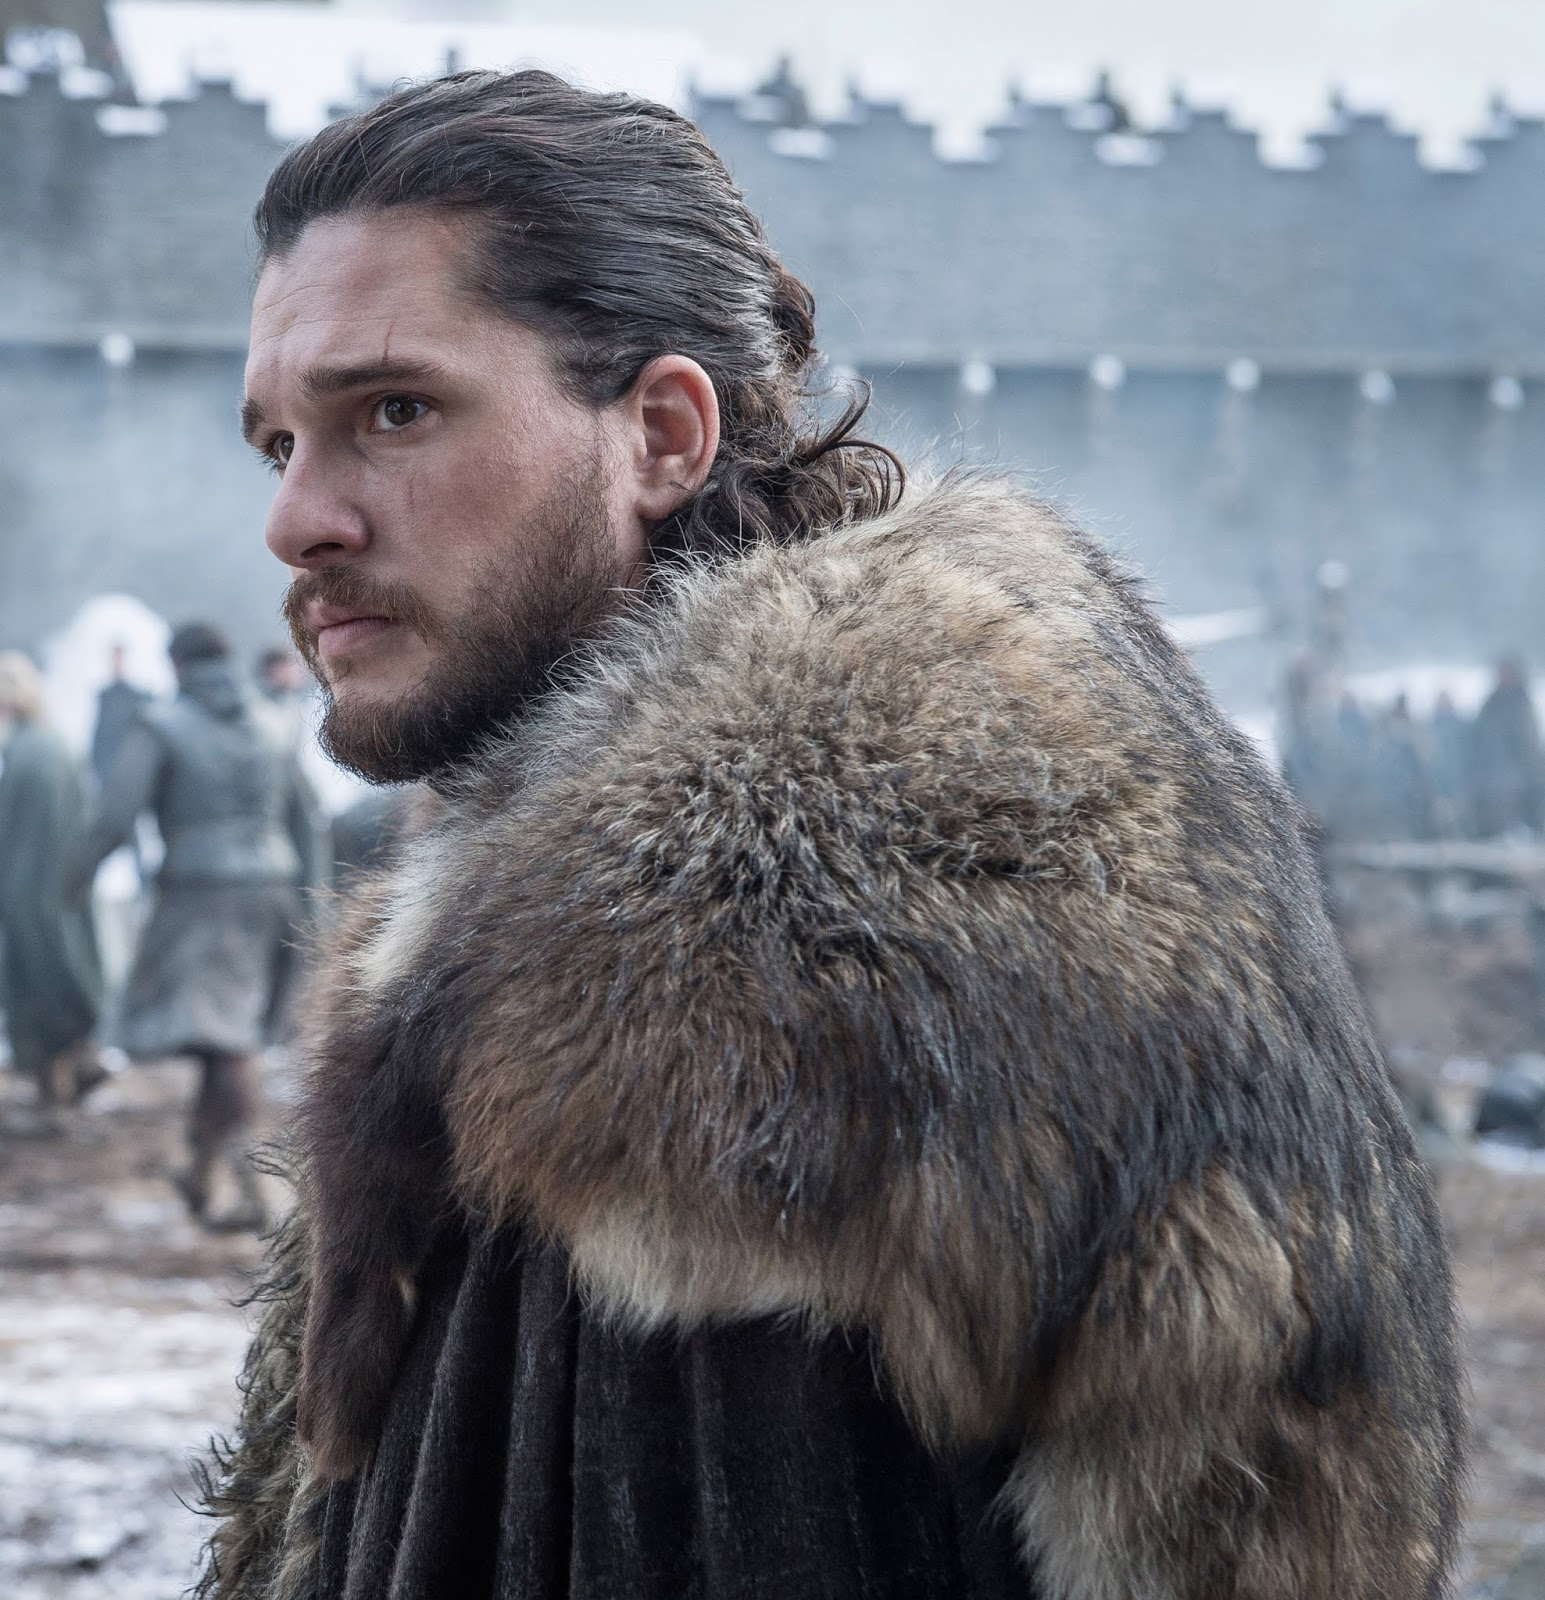 What you missed in the 'Game of Thrones' season 8 photos